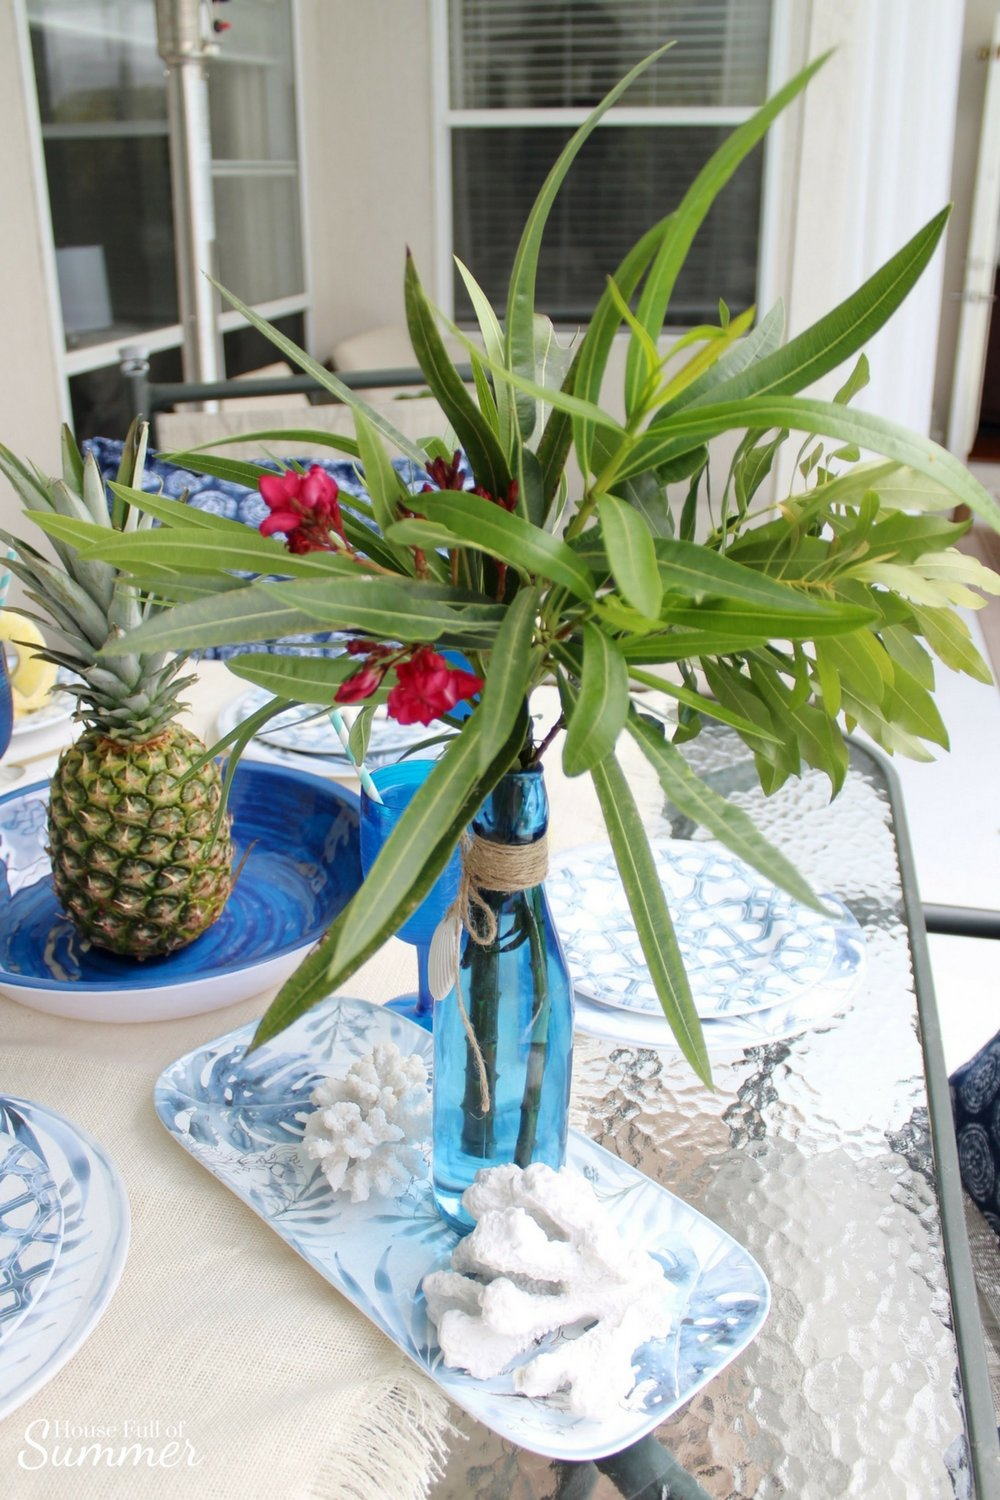 Blue Palms & Pineapples Outdoor Tablescape | House Full of Summer partnership with Christmas Tree Shops andThat! Coastal Living line, outdoor entertaining, poolside dining, plasticware, melamine, tropical dishes, chinoiserie chic, patio decor, coastal tablescape, blue and white table setting, pineapple cocktail, plastic blue wine glasses, navy and white decor, Florida home living, using backyard plants as fresh greenery #ad #Christmastreeshops